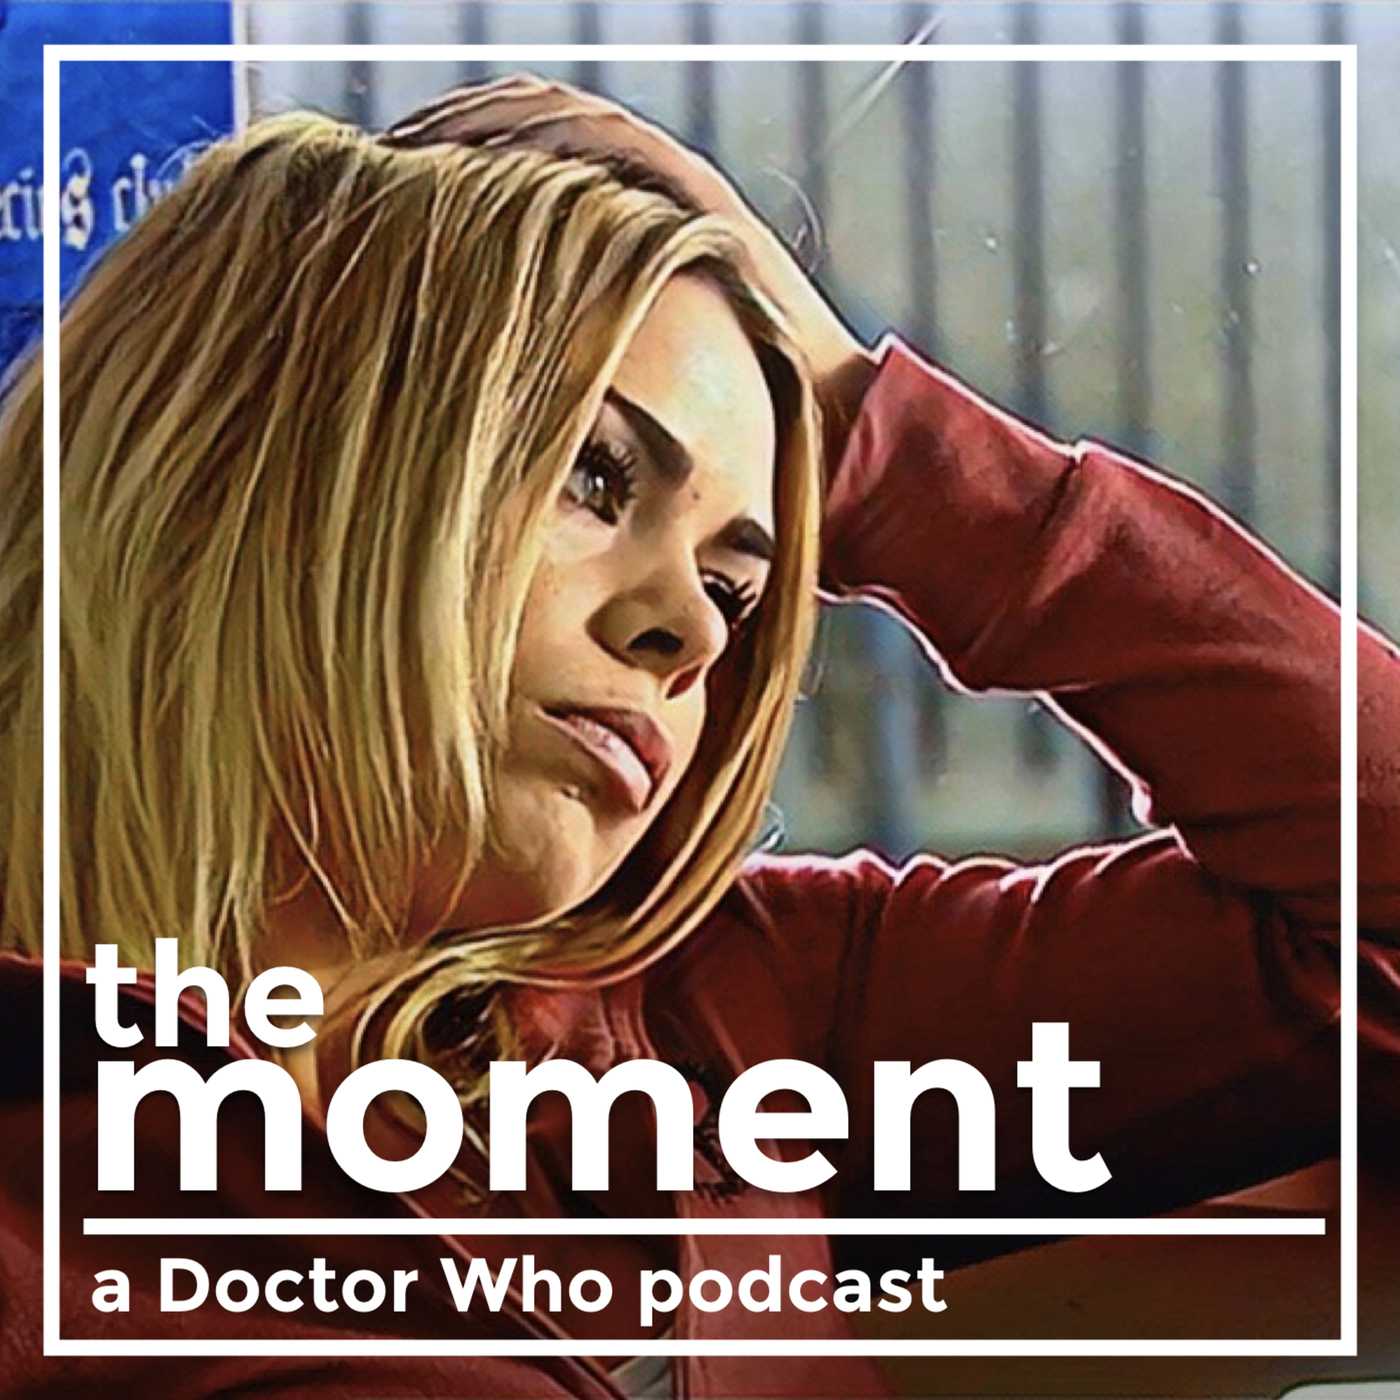 Doctor Who: The Moment: 2.03 - But what do I do every day, mum?